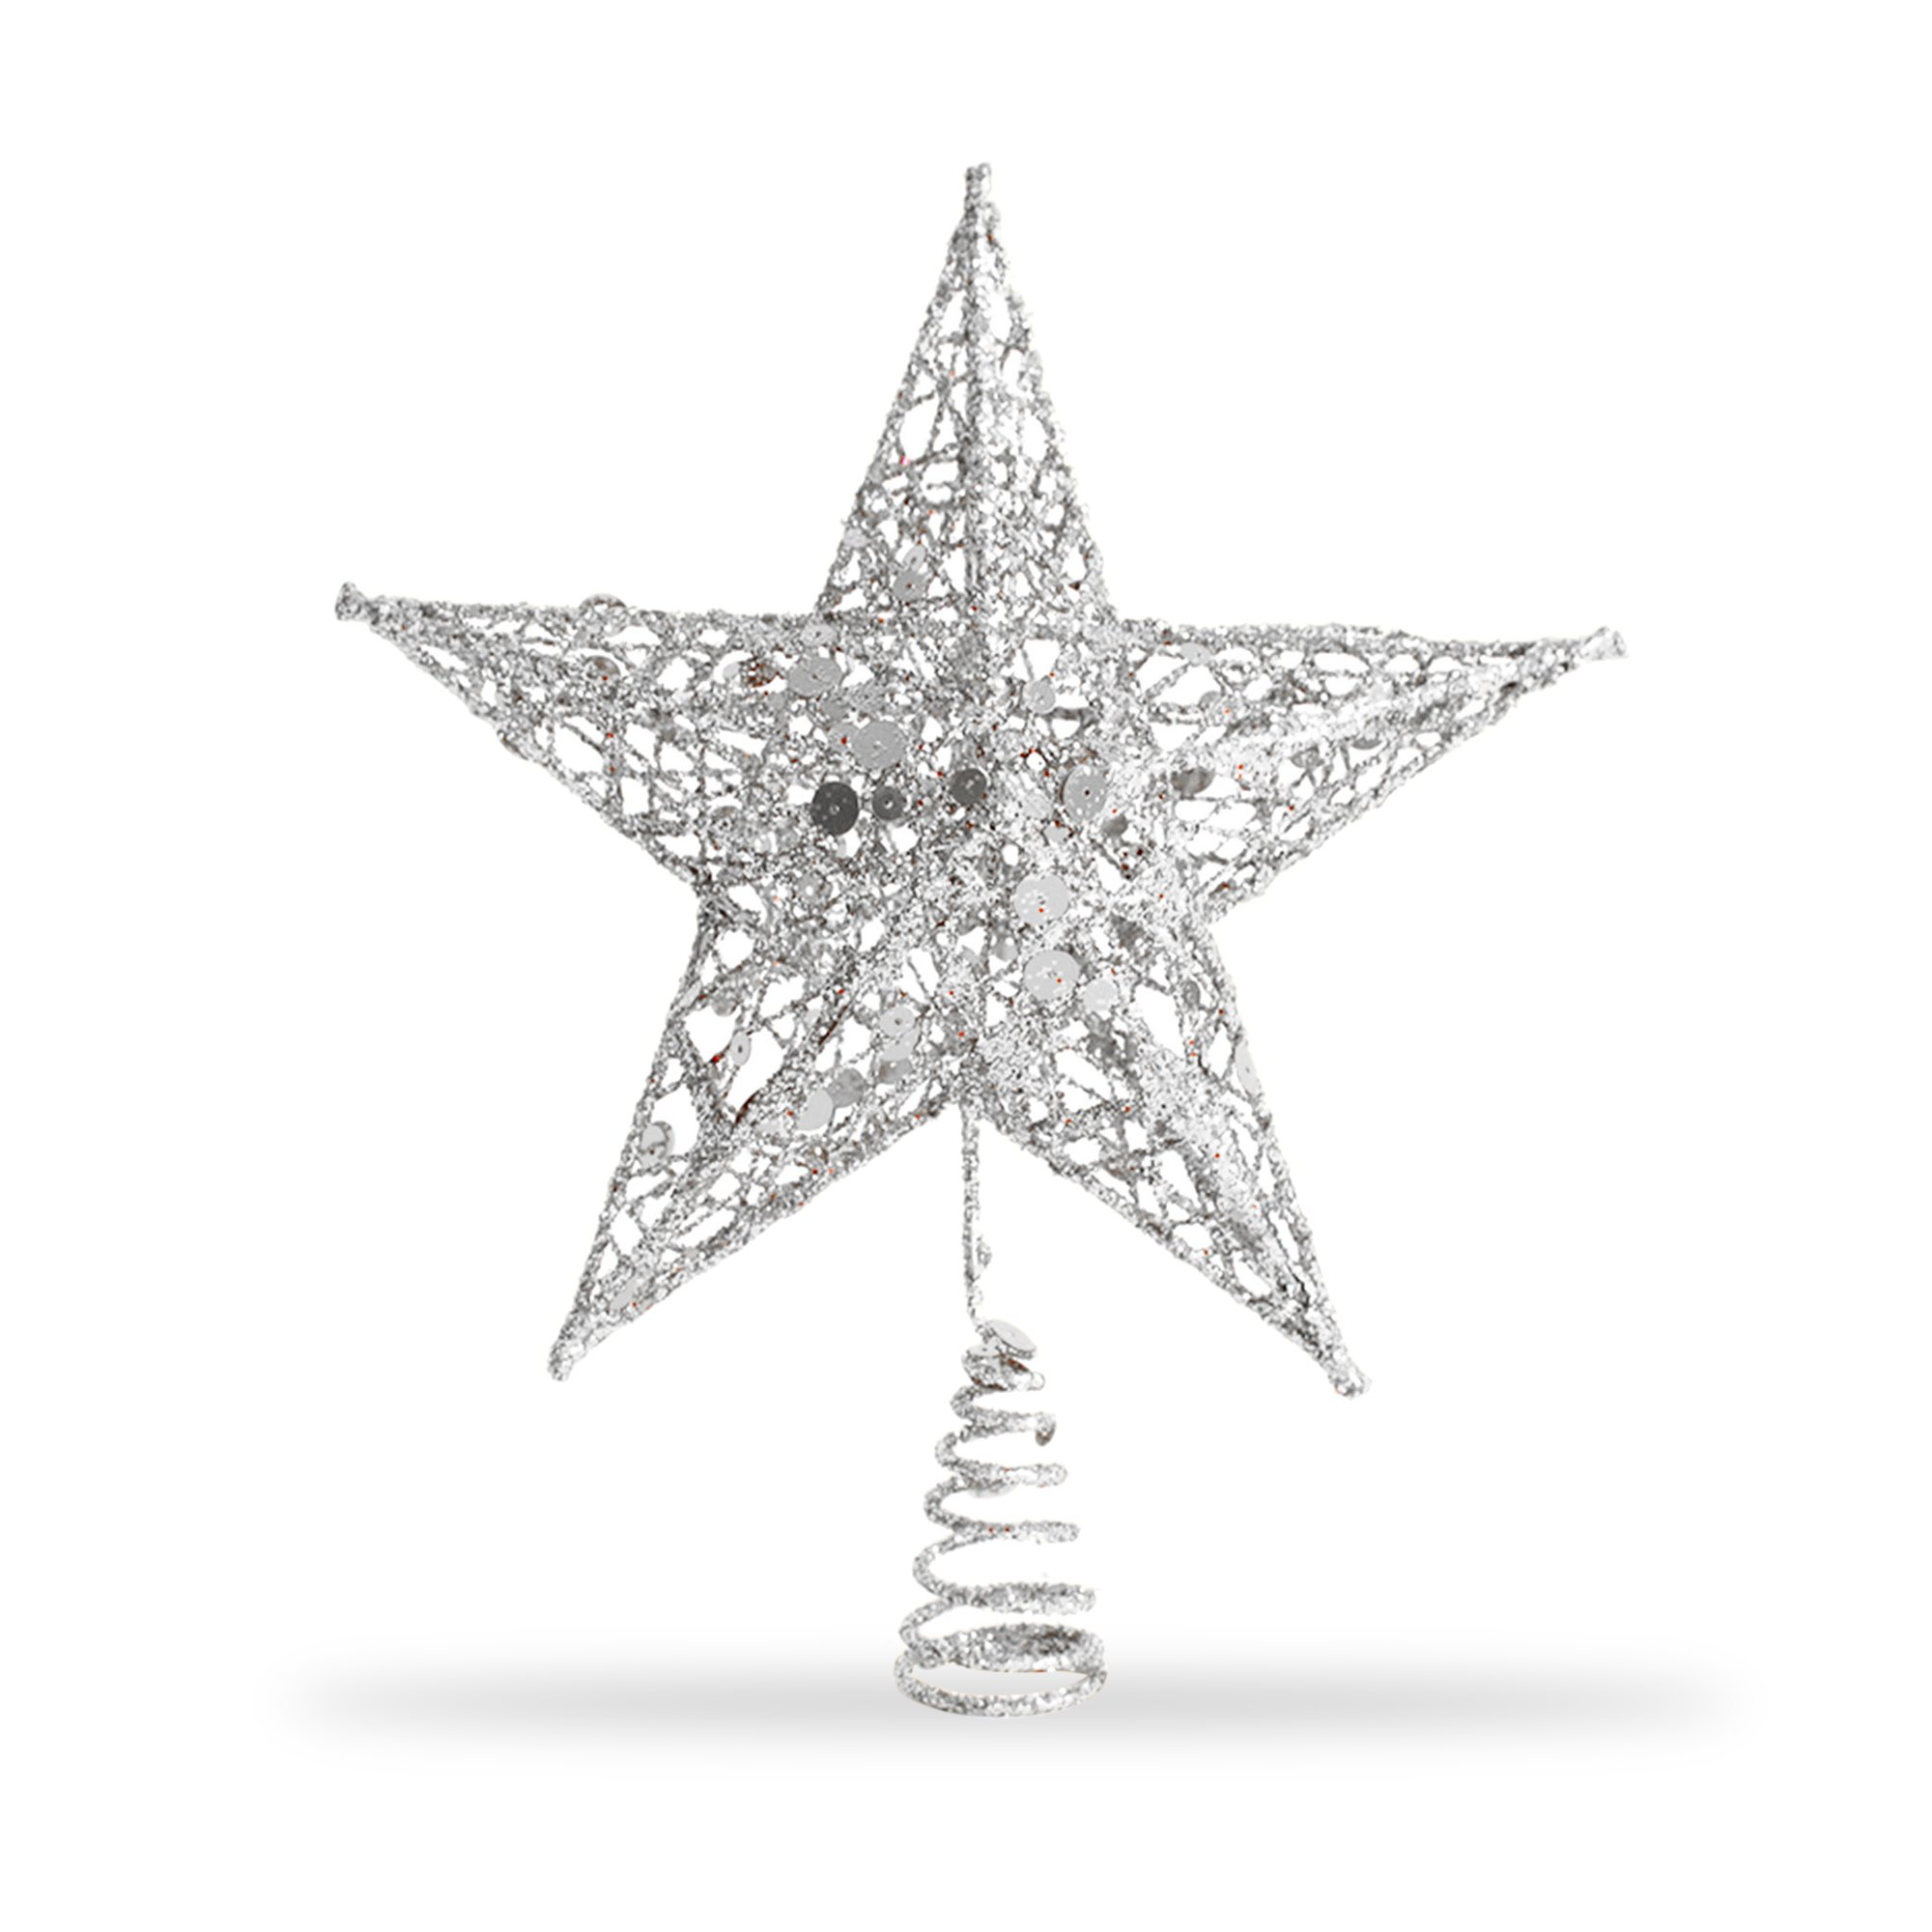 Star Tree Topper, Exquisite Shimmery 8-inch x 6-inch Star Christmas Tree Topper Christmas Tree Decoration 5 Point Star Treetop Decor (Silver)